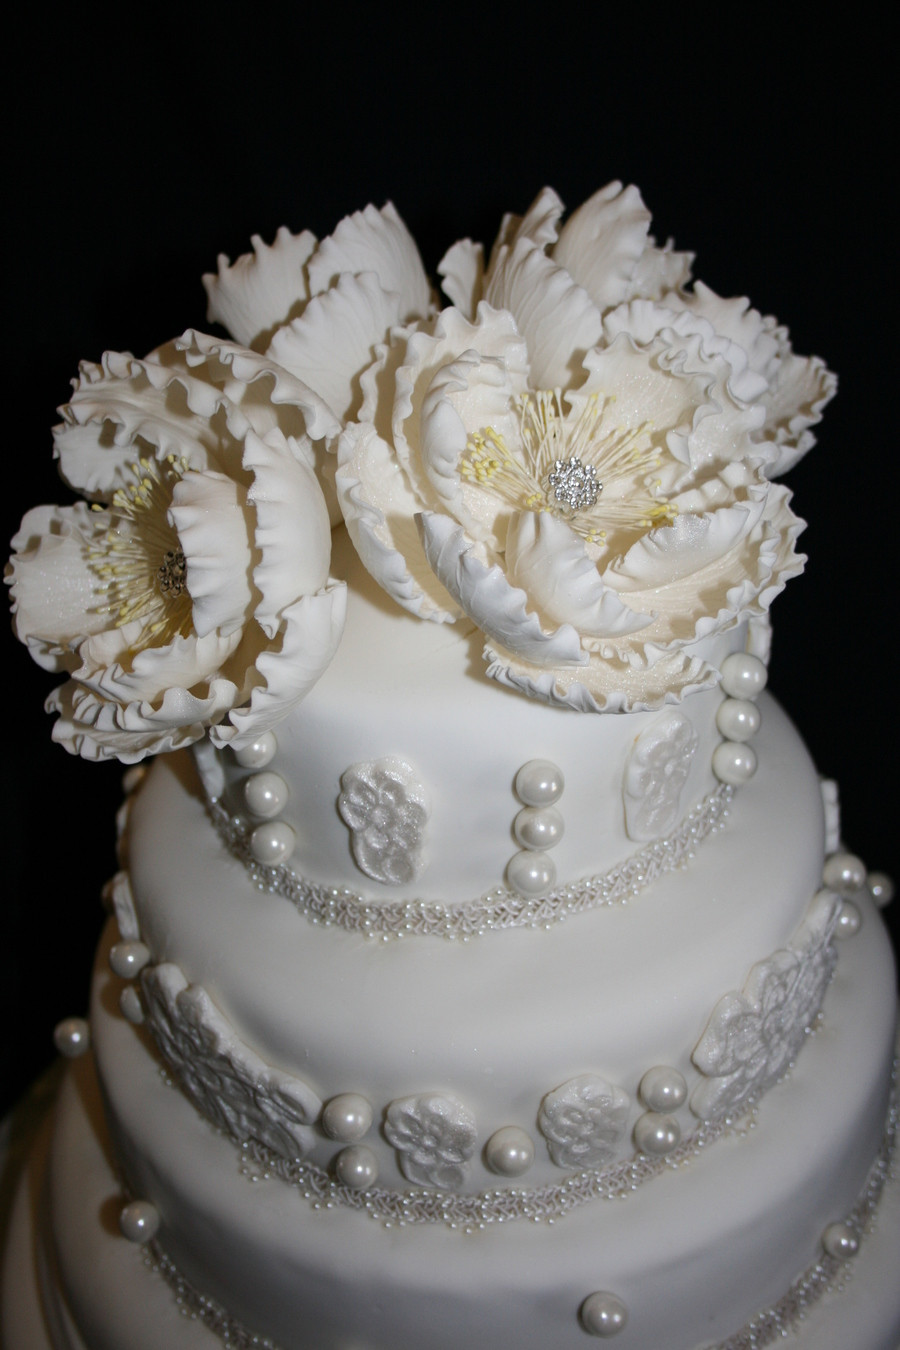 Chantilly Wedding Cakes  Chantilly Lace Wedding Cake CakeCentral